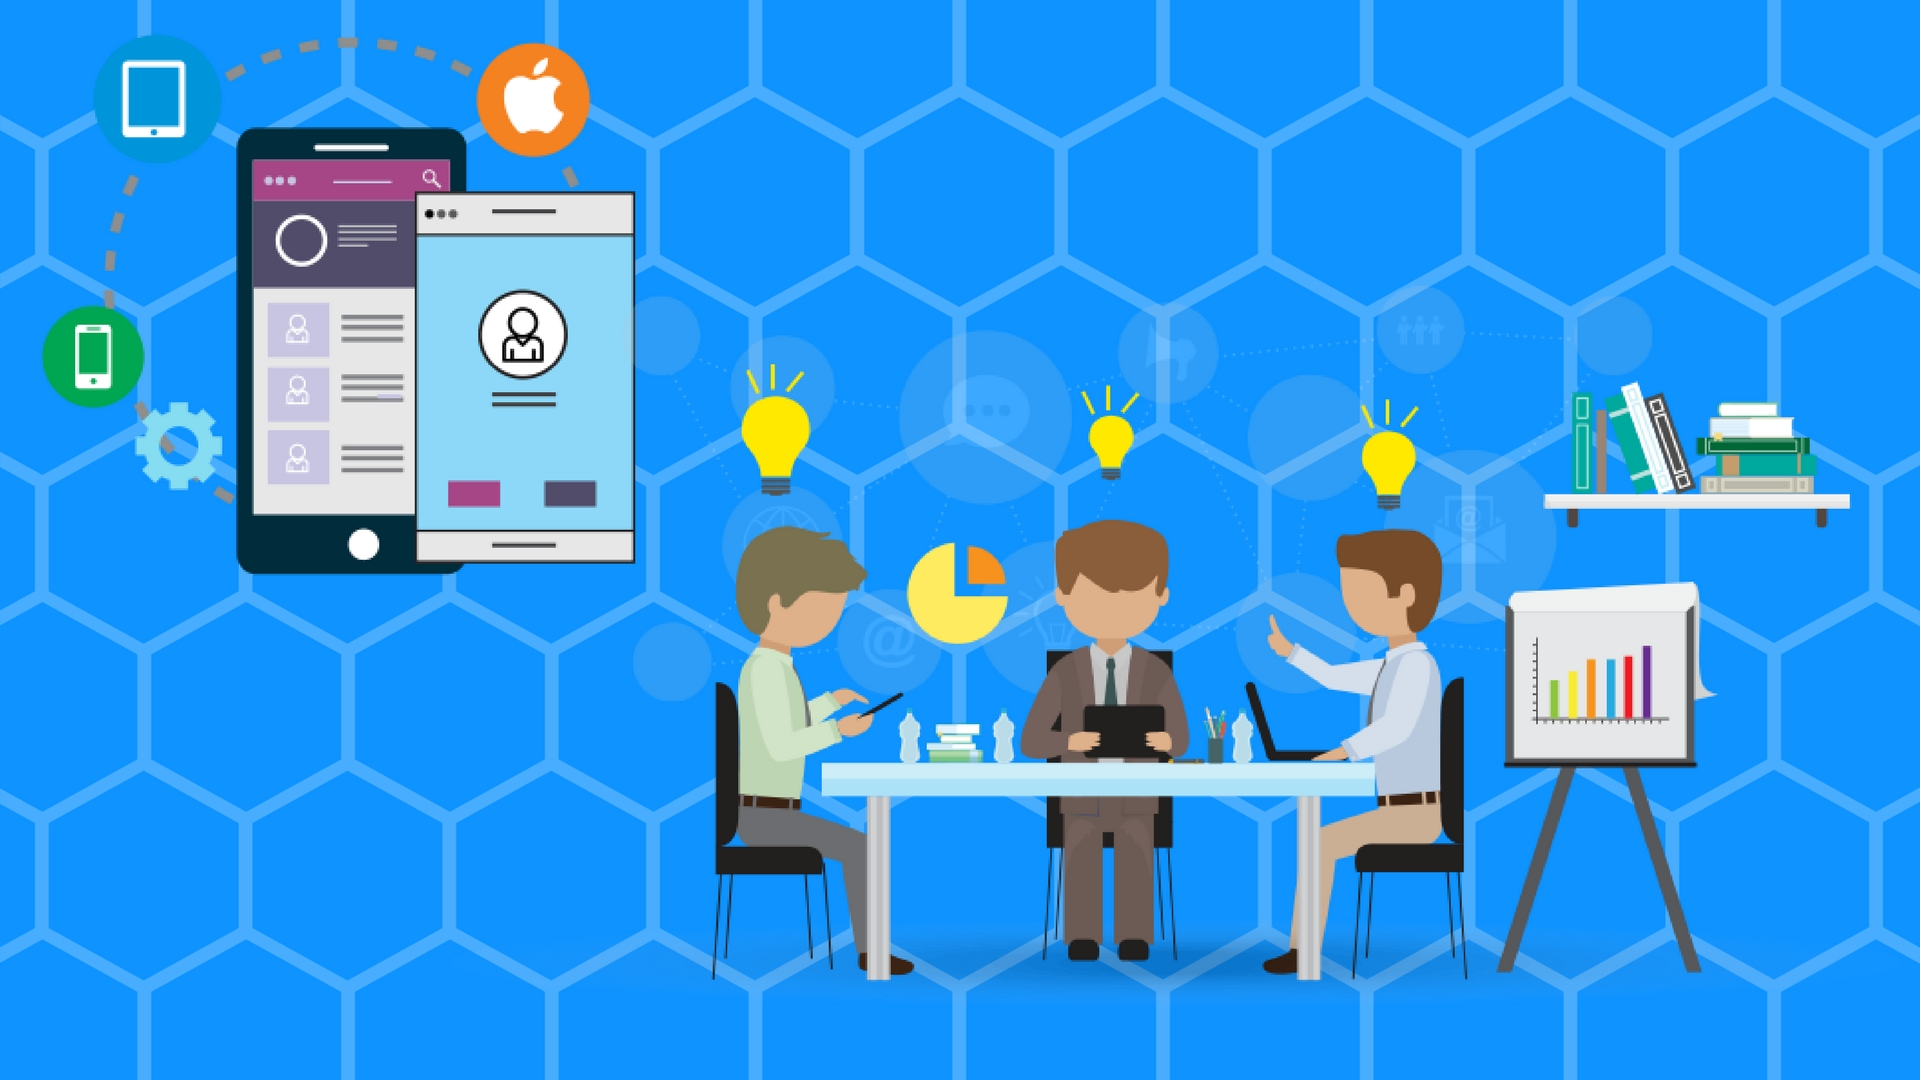 Mobile Development Company social networking features